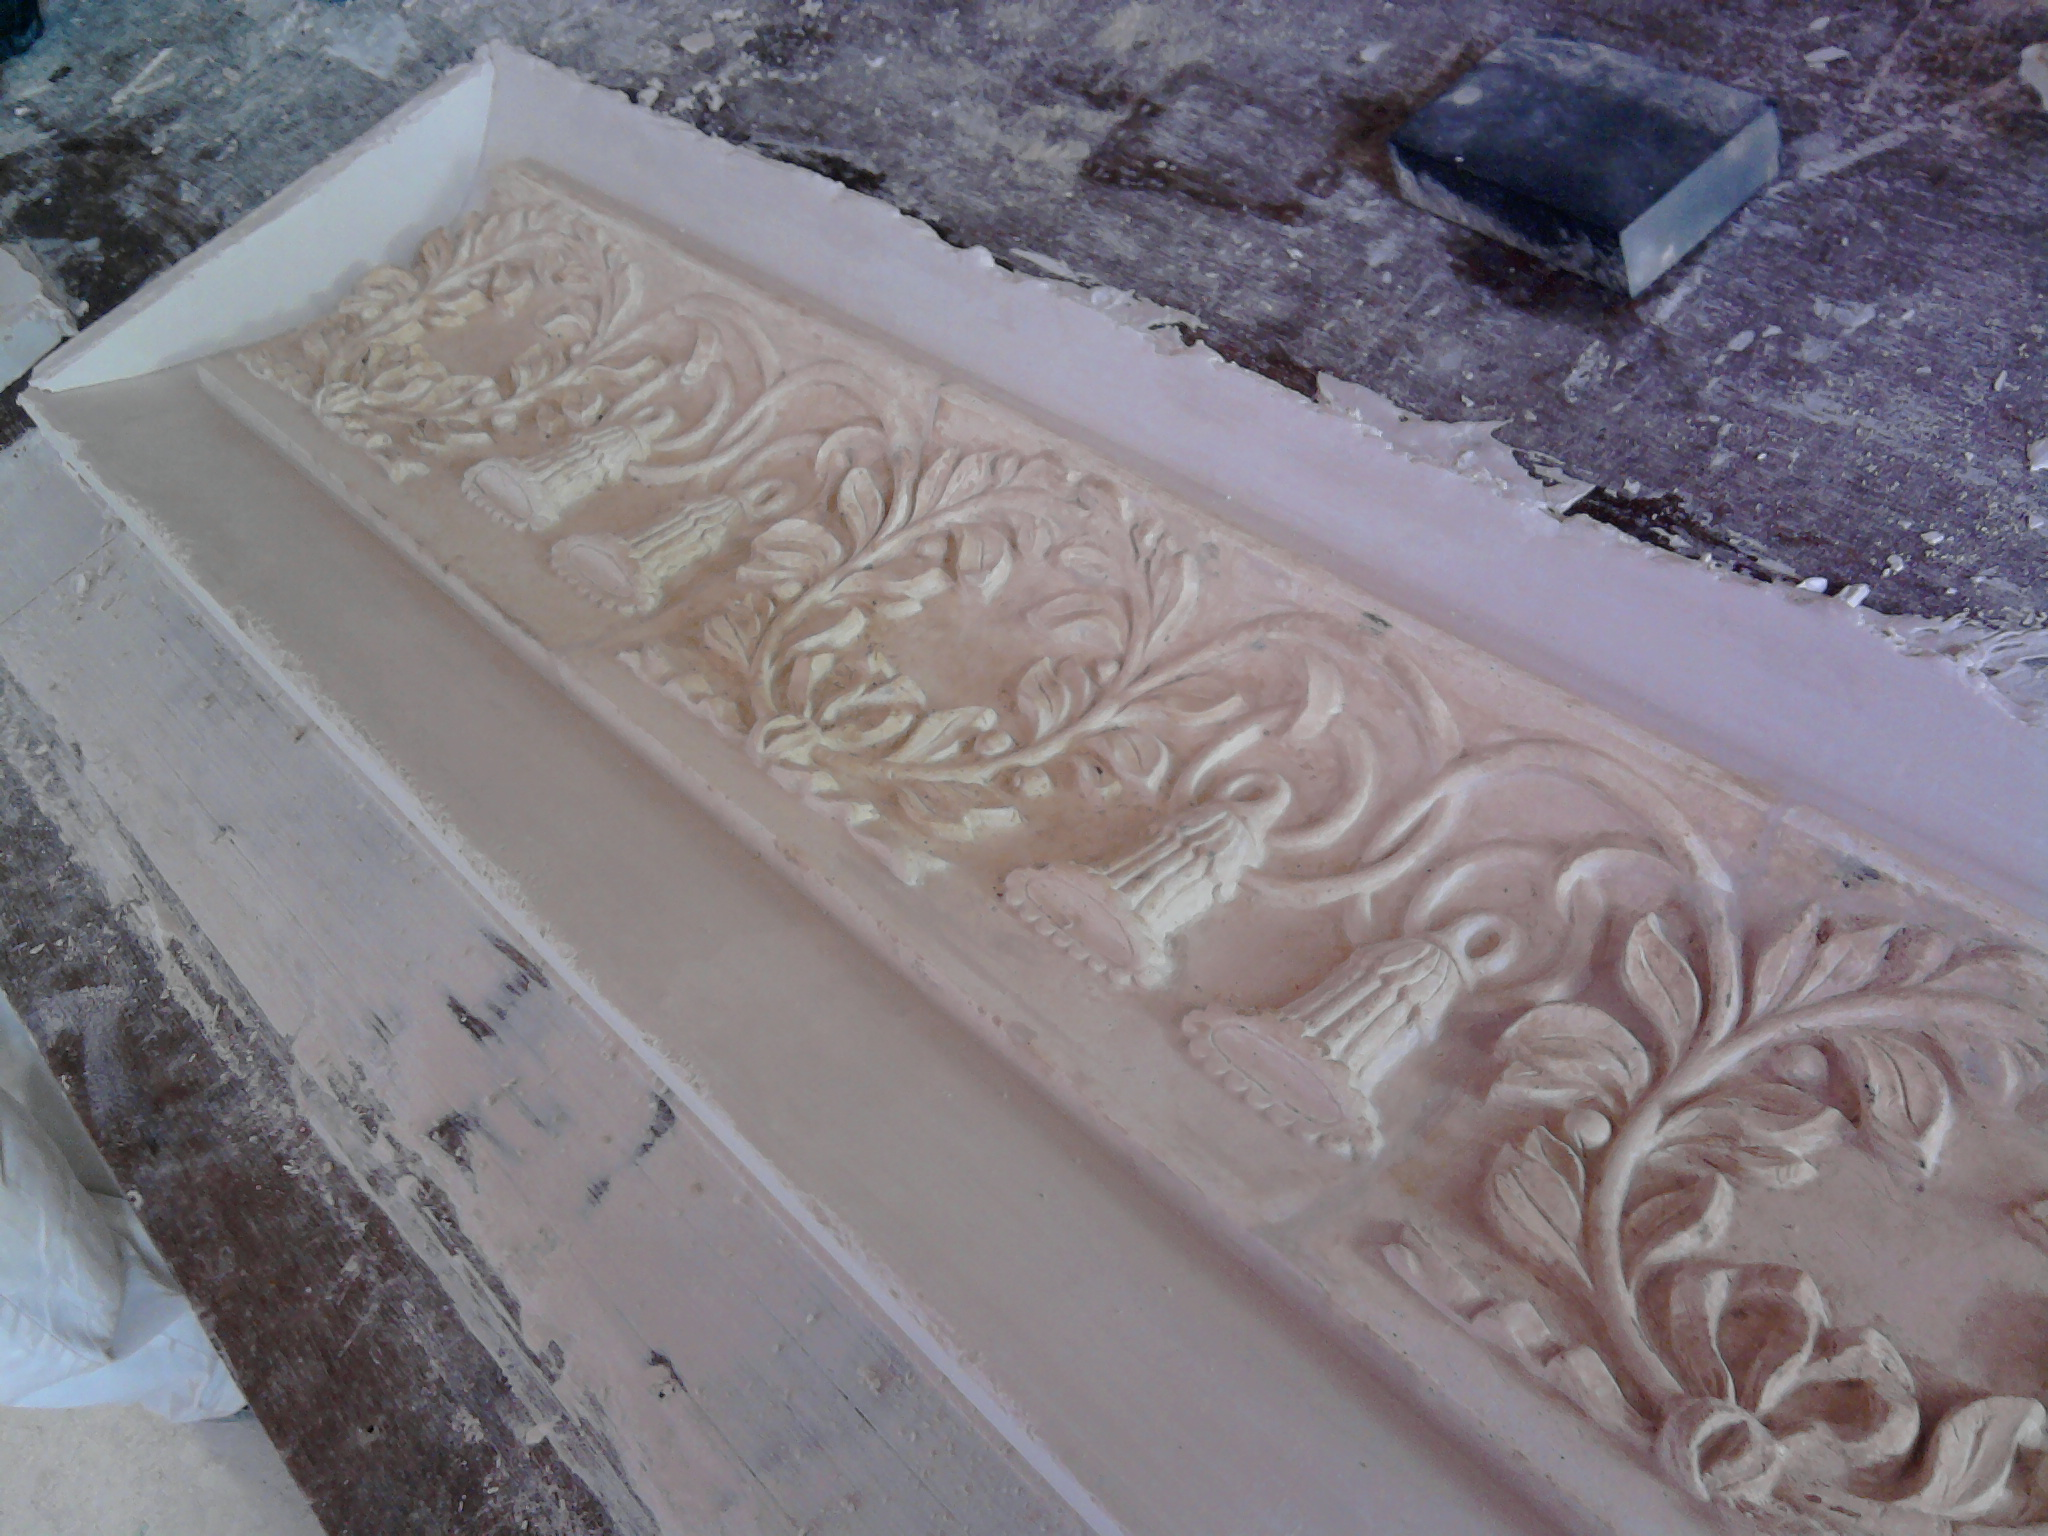 original cornice insert detail cleaned up